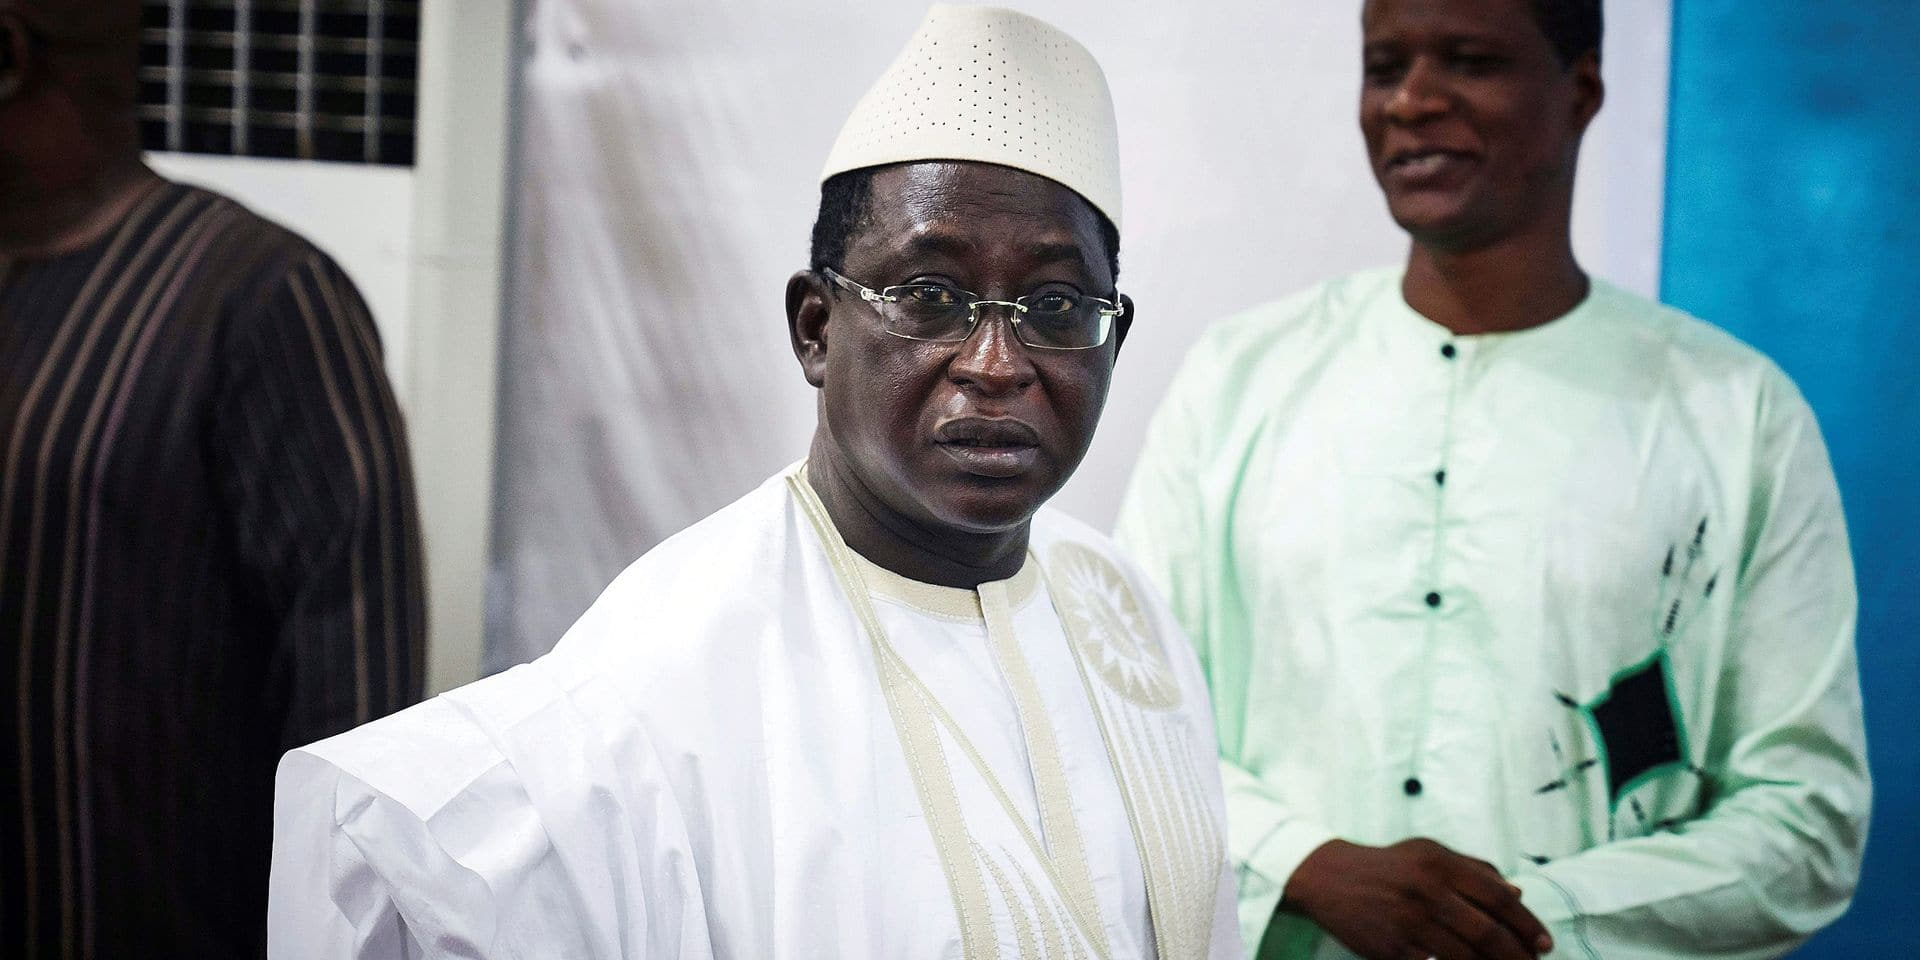 """Malian opposition leader and presidential candidate Soumaila Cisse (C) arrives for a press conference on August 6, 2018 in Bamako, ahead of the second round of the presidential election on August 12. The three main opposition candidates in Mali's presidential election announced on August 5, 2018 they were mounting a legal challenge in the country's constitutional court alleging """"ballot box-stuffing"""" and other irregularities, after incumbent president took the lead in the first round of the vote last month. / AFP PHOTO / Michele CATTANI"""